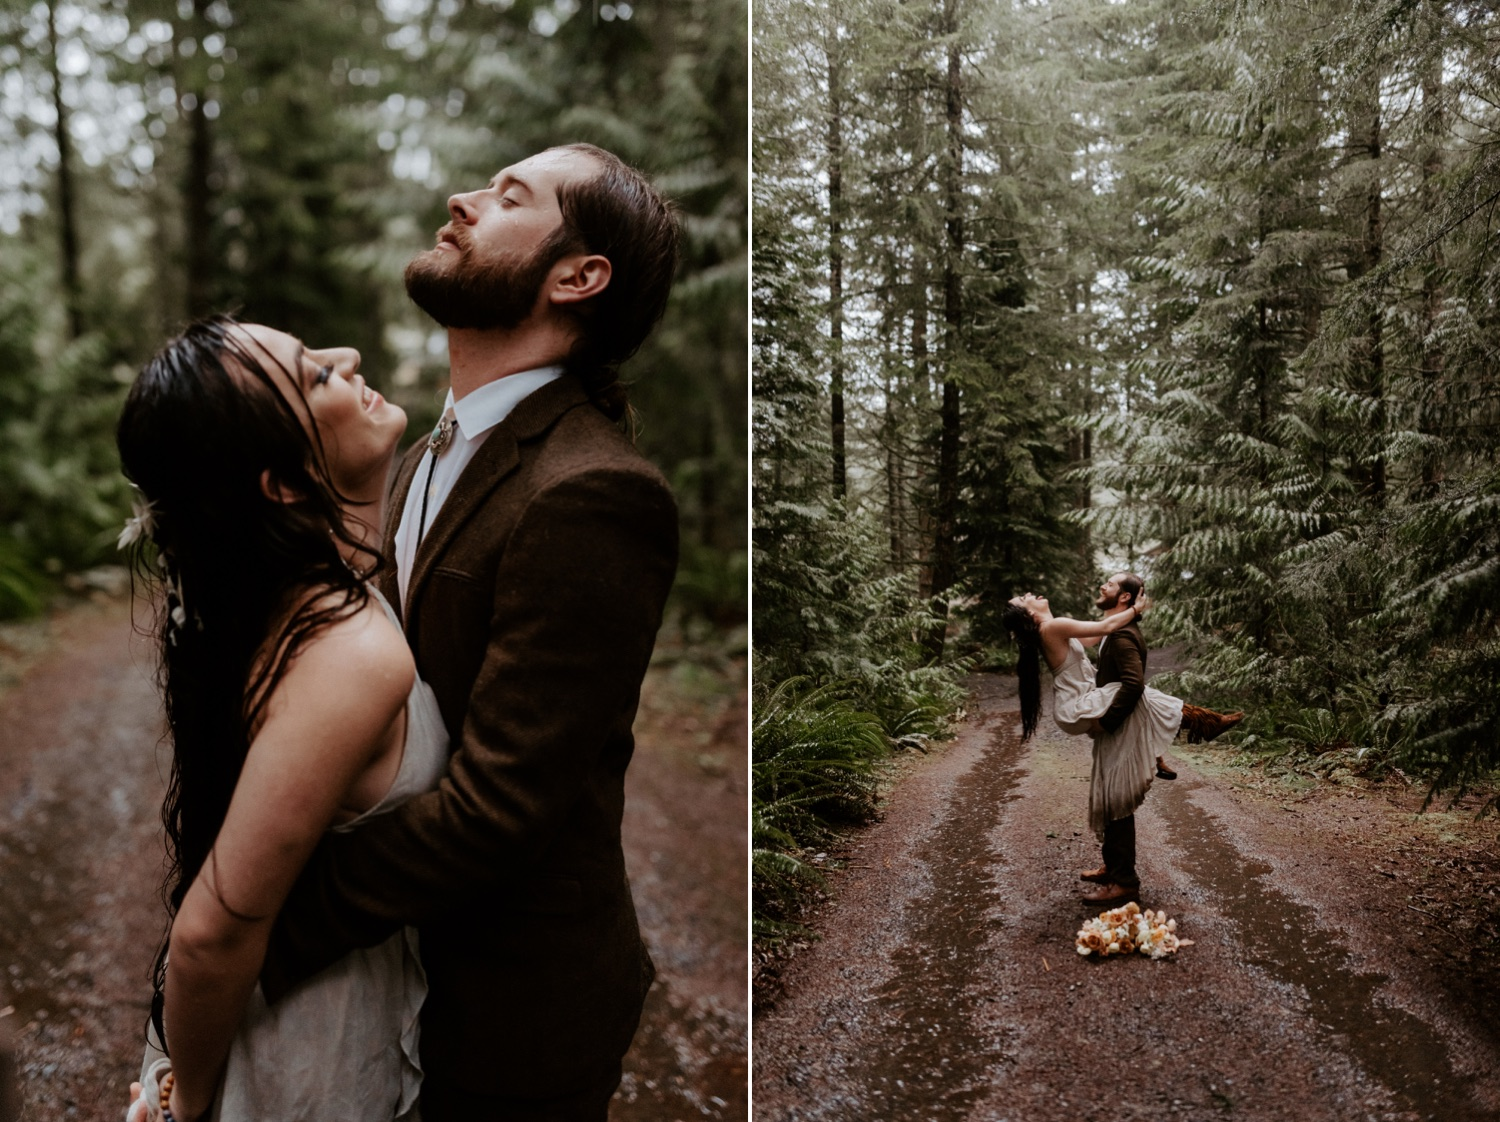 The Woodlands House Sandy Oregon Elopement Portland Elopement Photographer PNW Adventurous Elopement Anais Possamai Photography 031